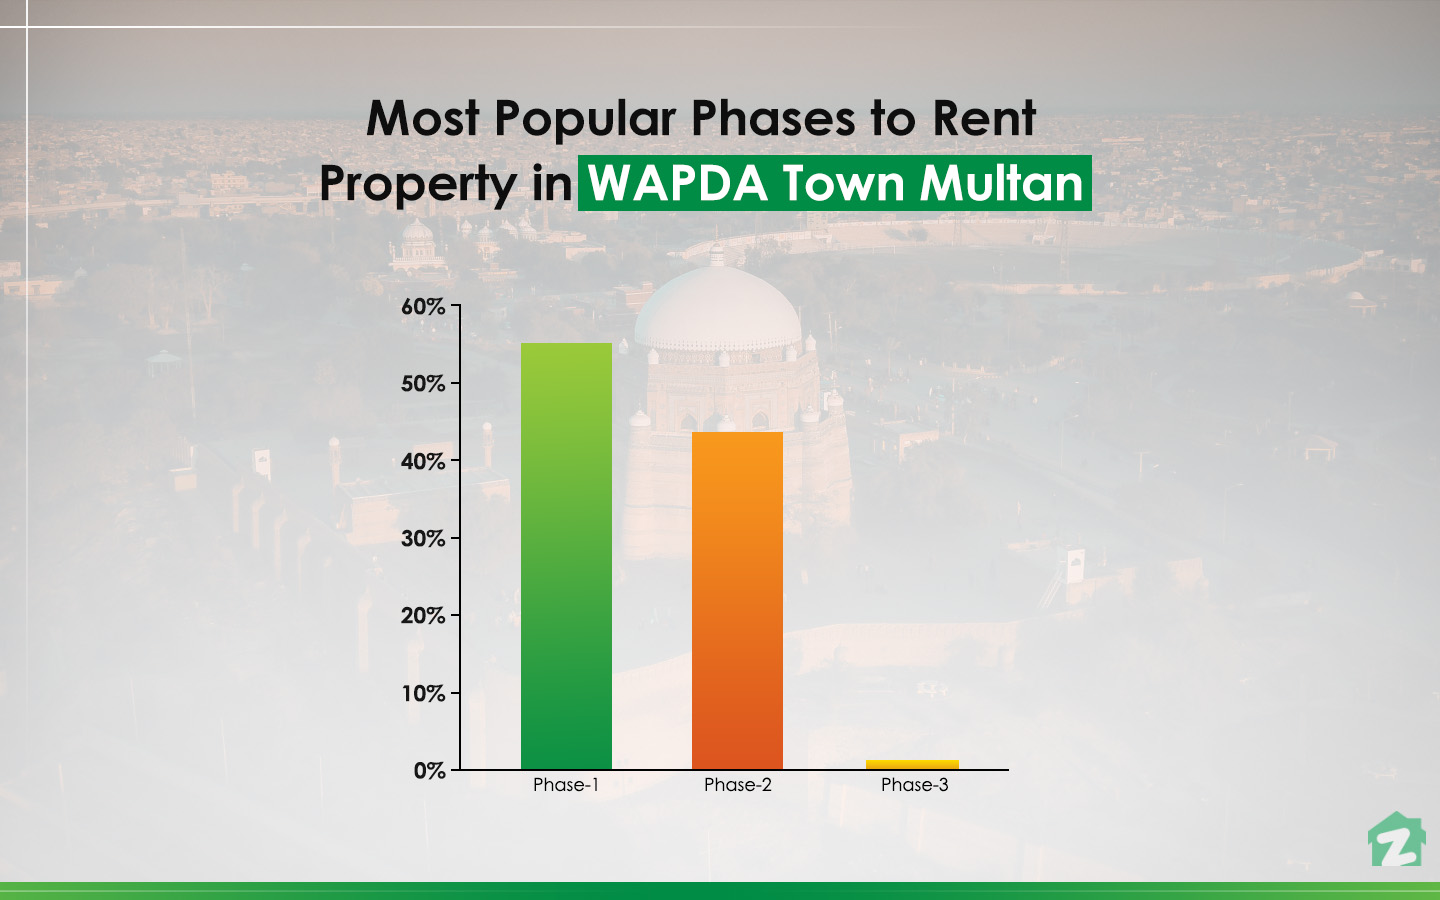 Most Popular Phases to rent Property in WAPDA Town, Multan